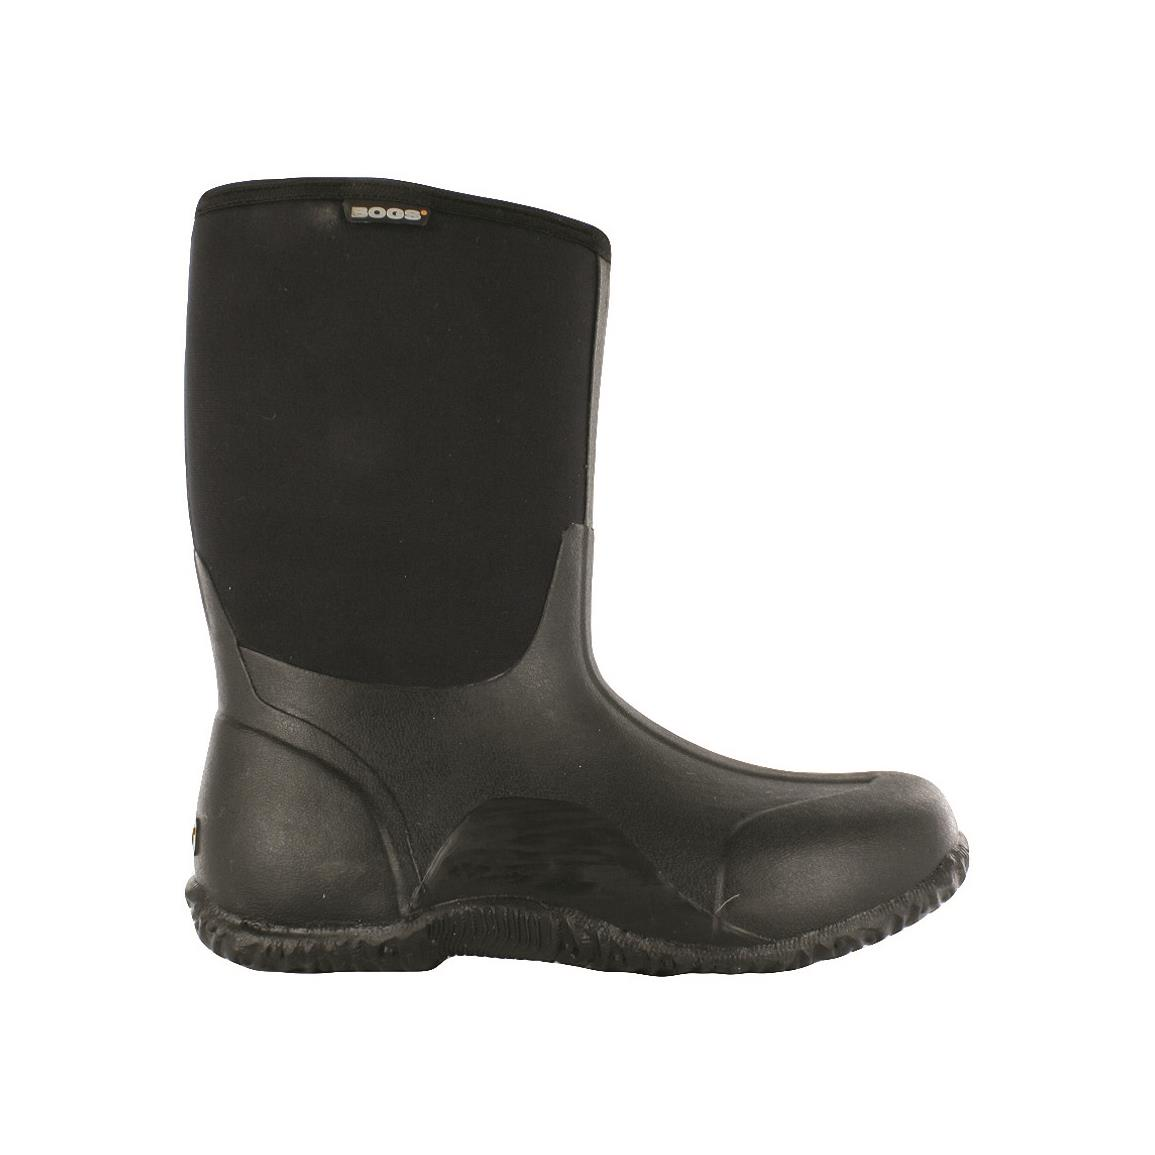 Bogs Men's Classic Mid Rubber Hunting Boots, Black